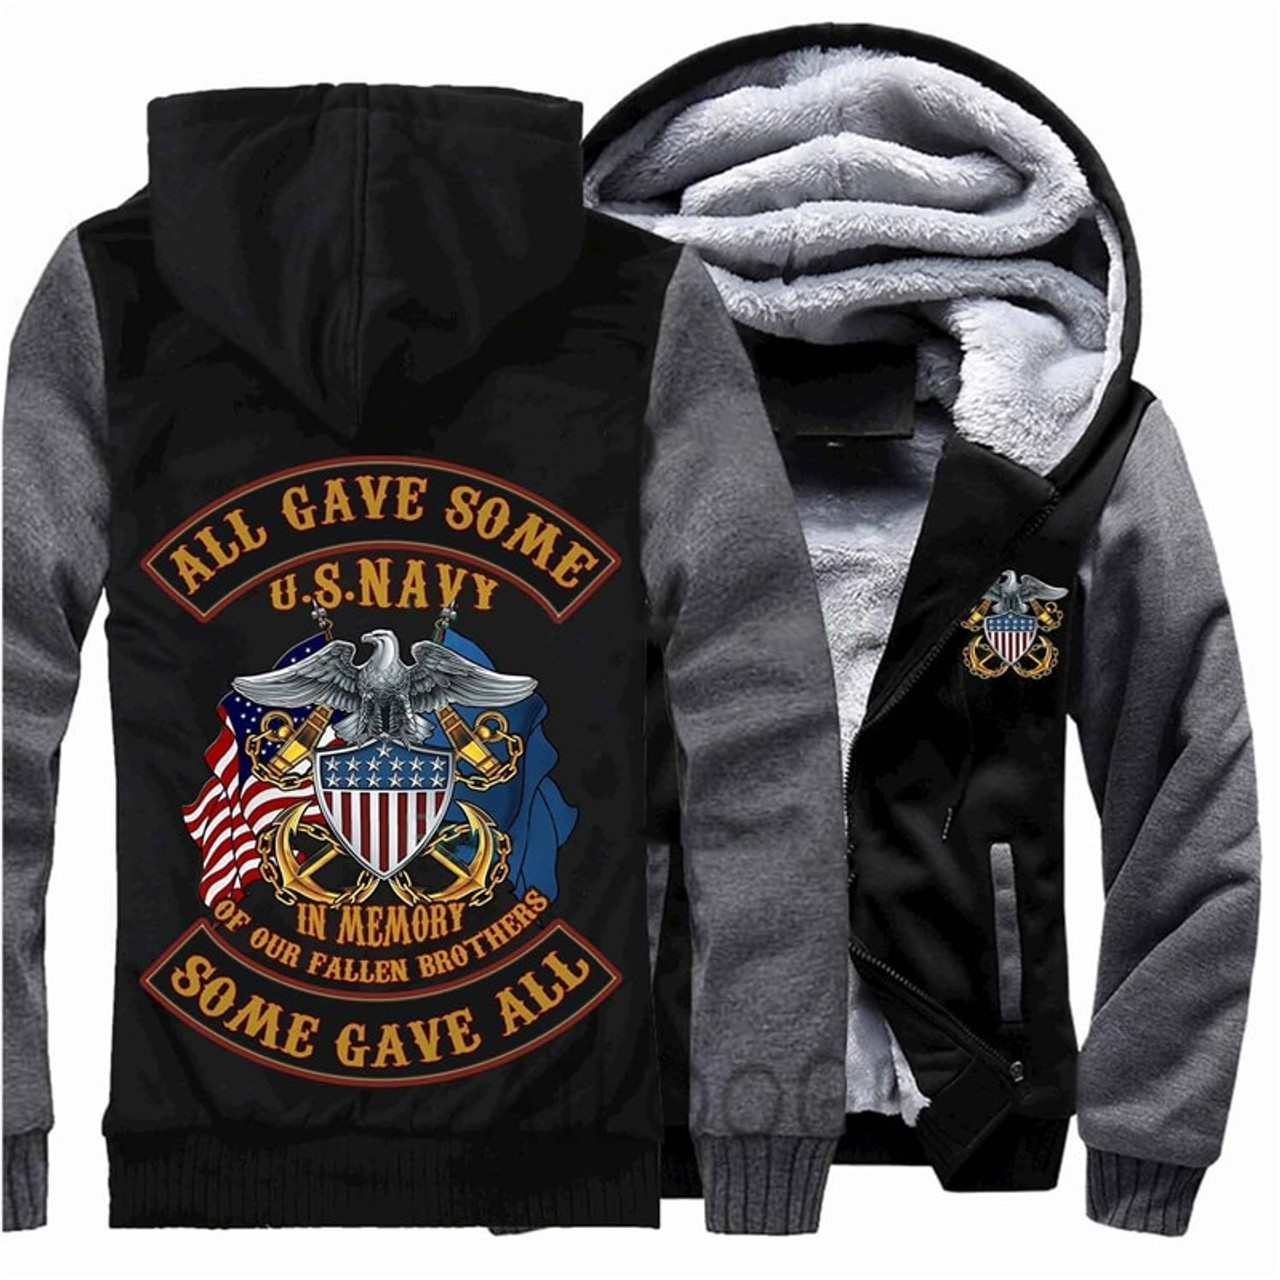 **(NEW-OFFICIALLY-LICENSED-U.S. NAVY-VETERAN/ALL-GAVE-SOME & SOME-GAVE-ALL,IN-MEMORY-OF-OUR-FALLEN-BROTHERS/WITH-SYMBOLIC-EAGLE & OFFICIAL-CLASSIC-NAVY-ANCHOR-SHIELD/NICE-CUSTOM-3D-GRAPHIC-PRINTED/DOUBLE-SIDED-HEAVY-FLEECE-ZIPPER-UP-HOODIES)**